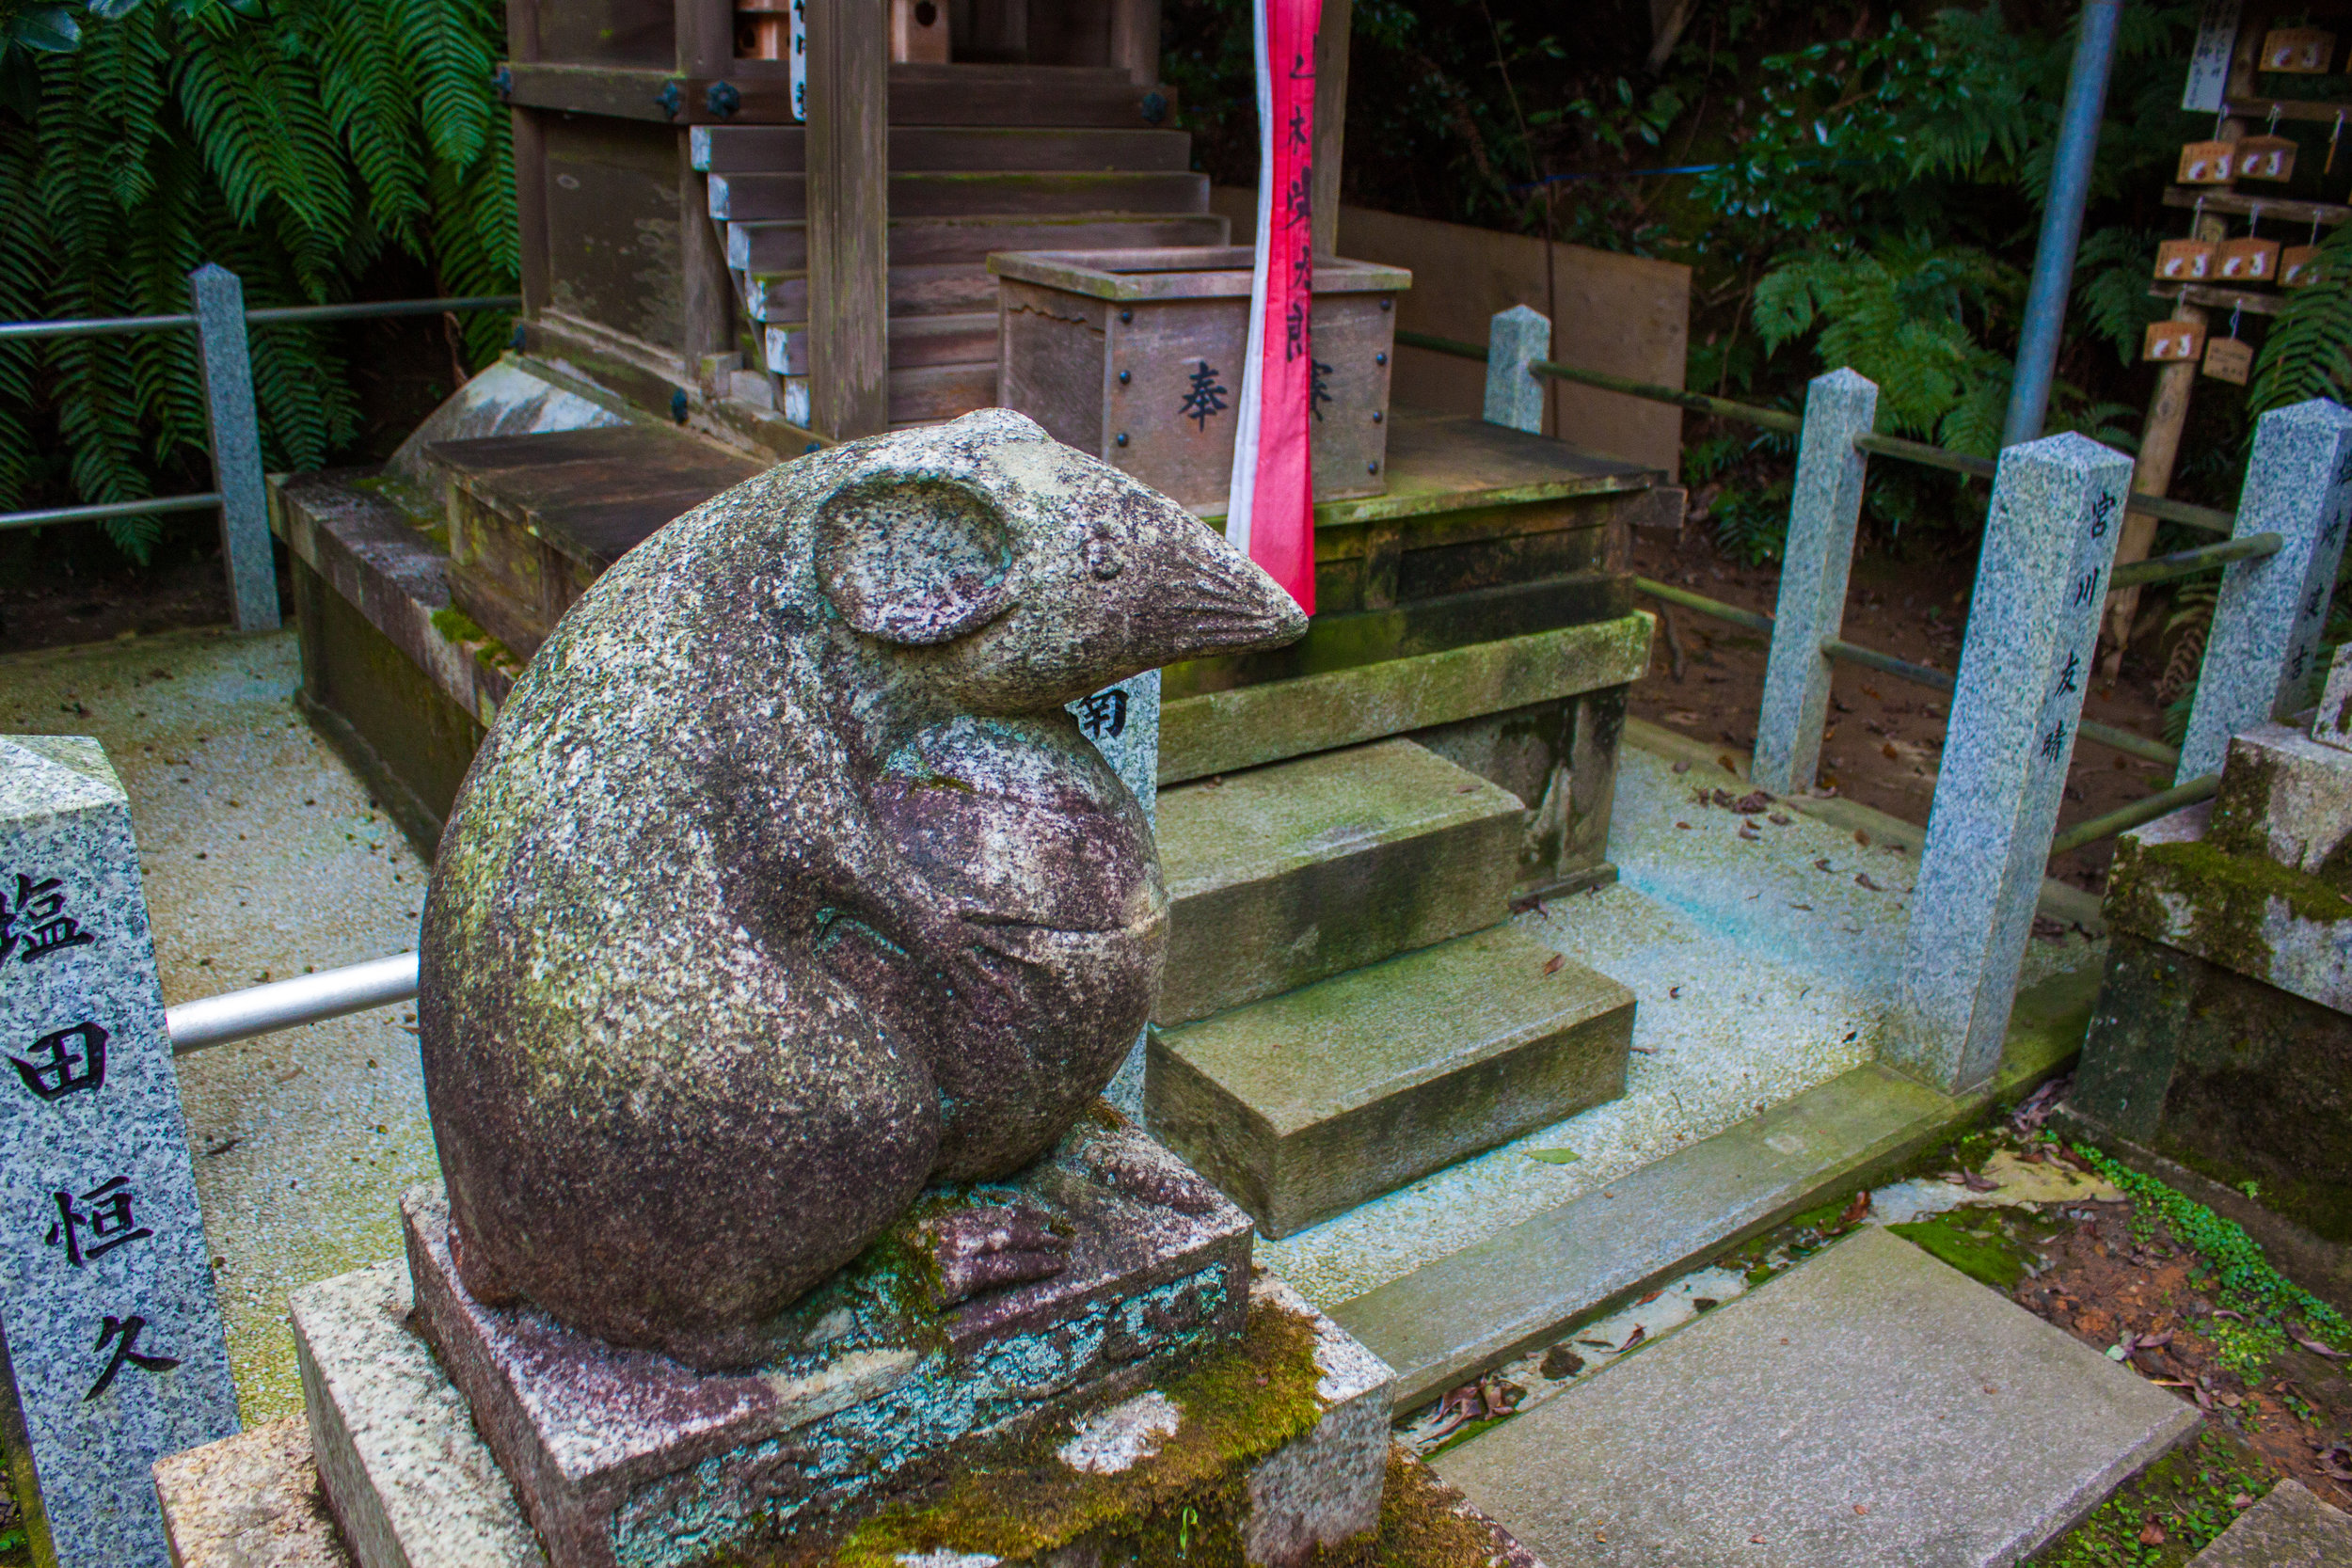 29741285764_488e2b2d5b_o.jpgThe Top 13 Things to Explore along Kyoto's Philosopher's Path